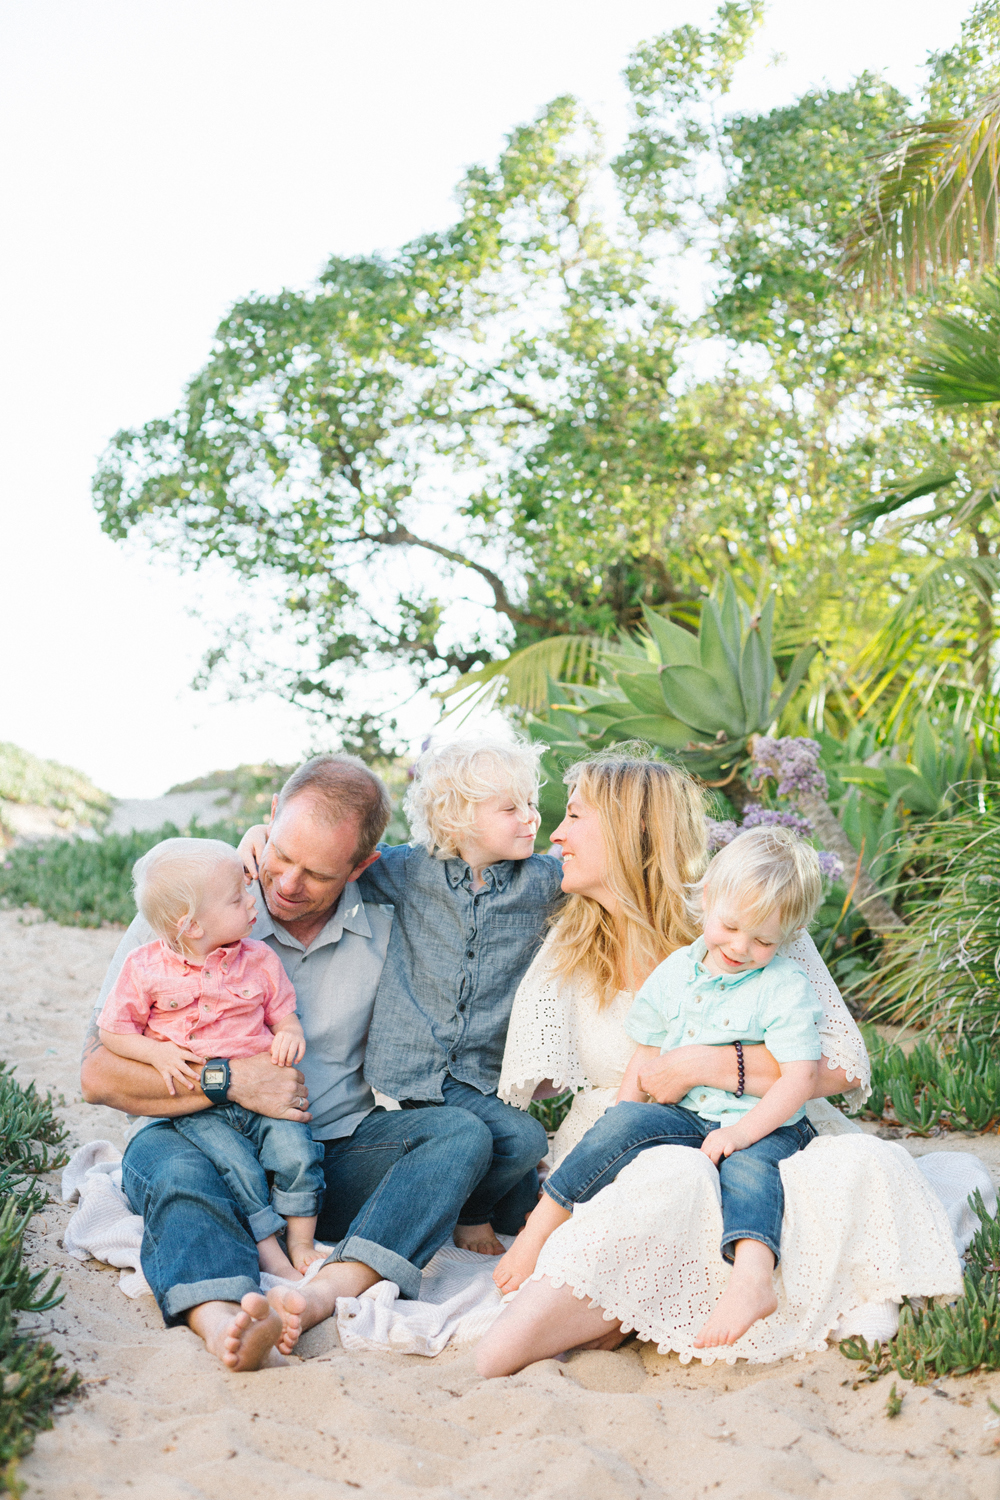 10 tips for your next family photo session with Alison Bernier